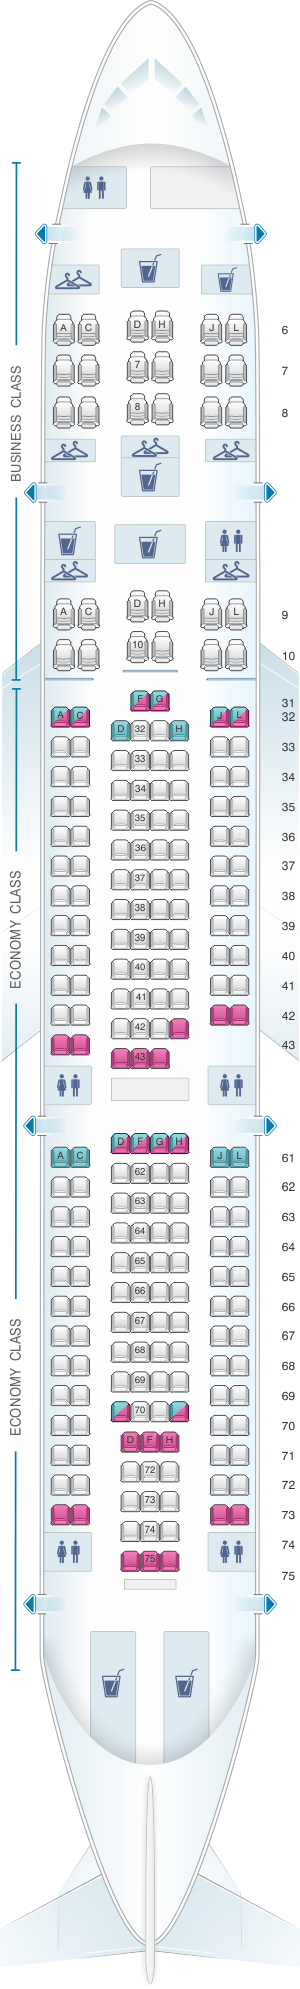 Seat map for China Eastern Airlines Airbus A330 200 232PAX V1